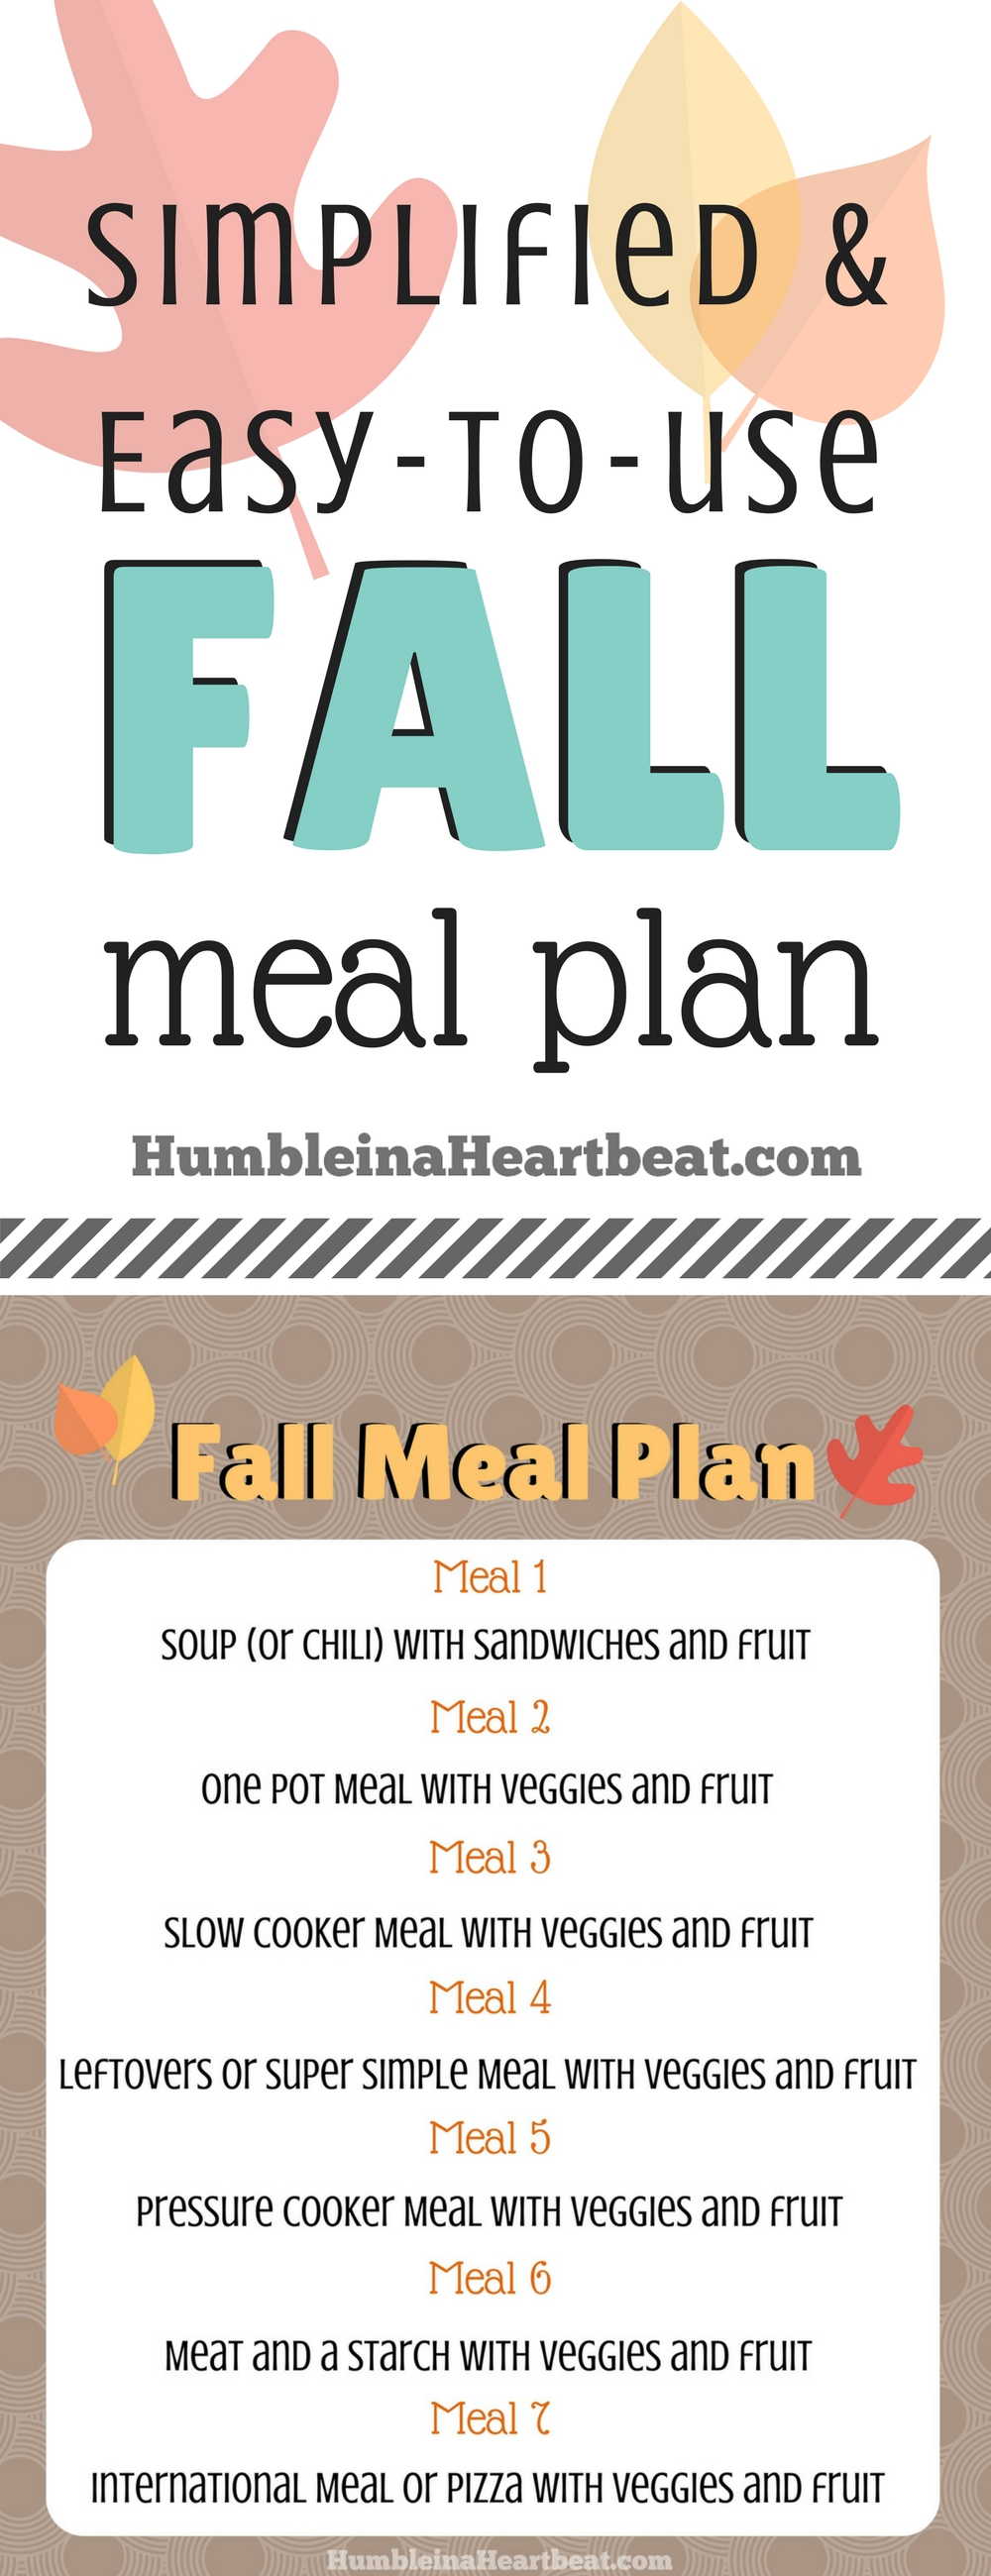 Fall is such a busy time of year so this rotatable meal plan will make my life way easier! Can't wait to print it out and use it!